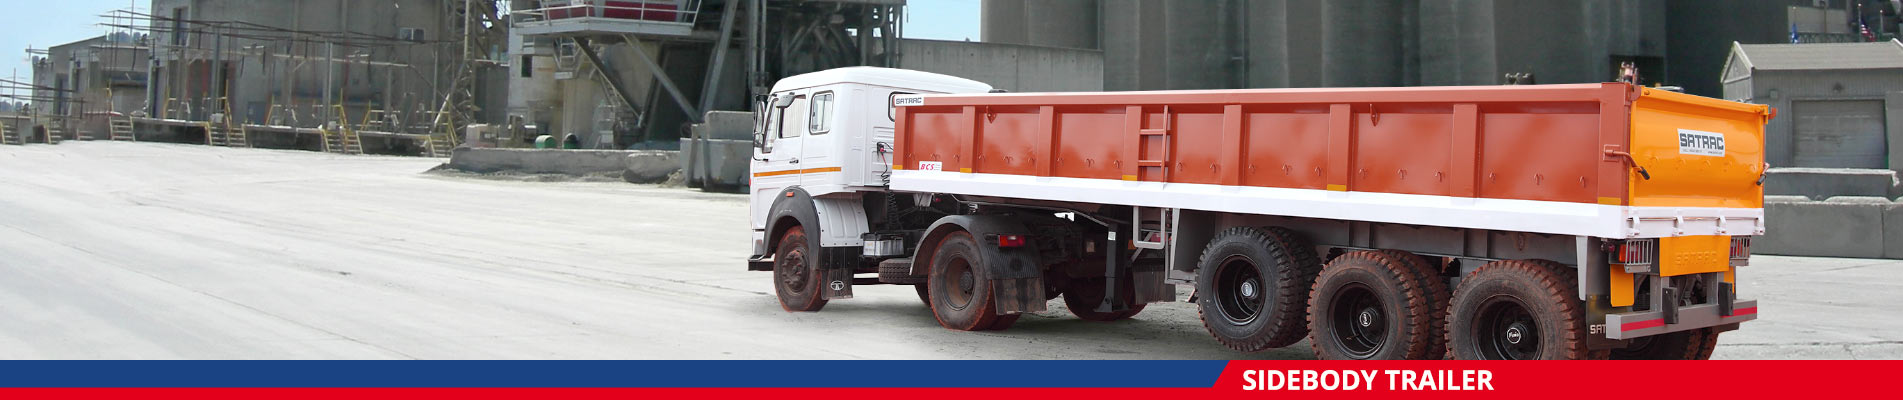 Sidebody Trailer Manufacturers in India